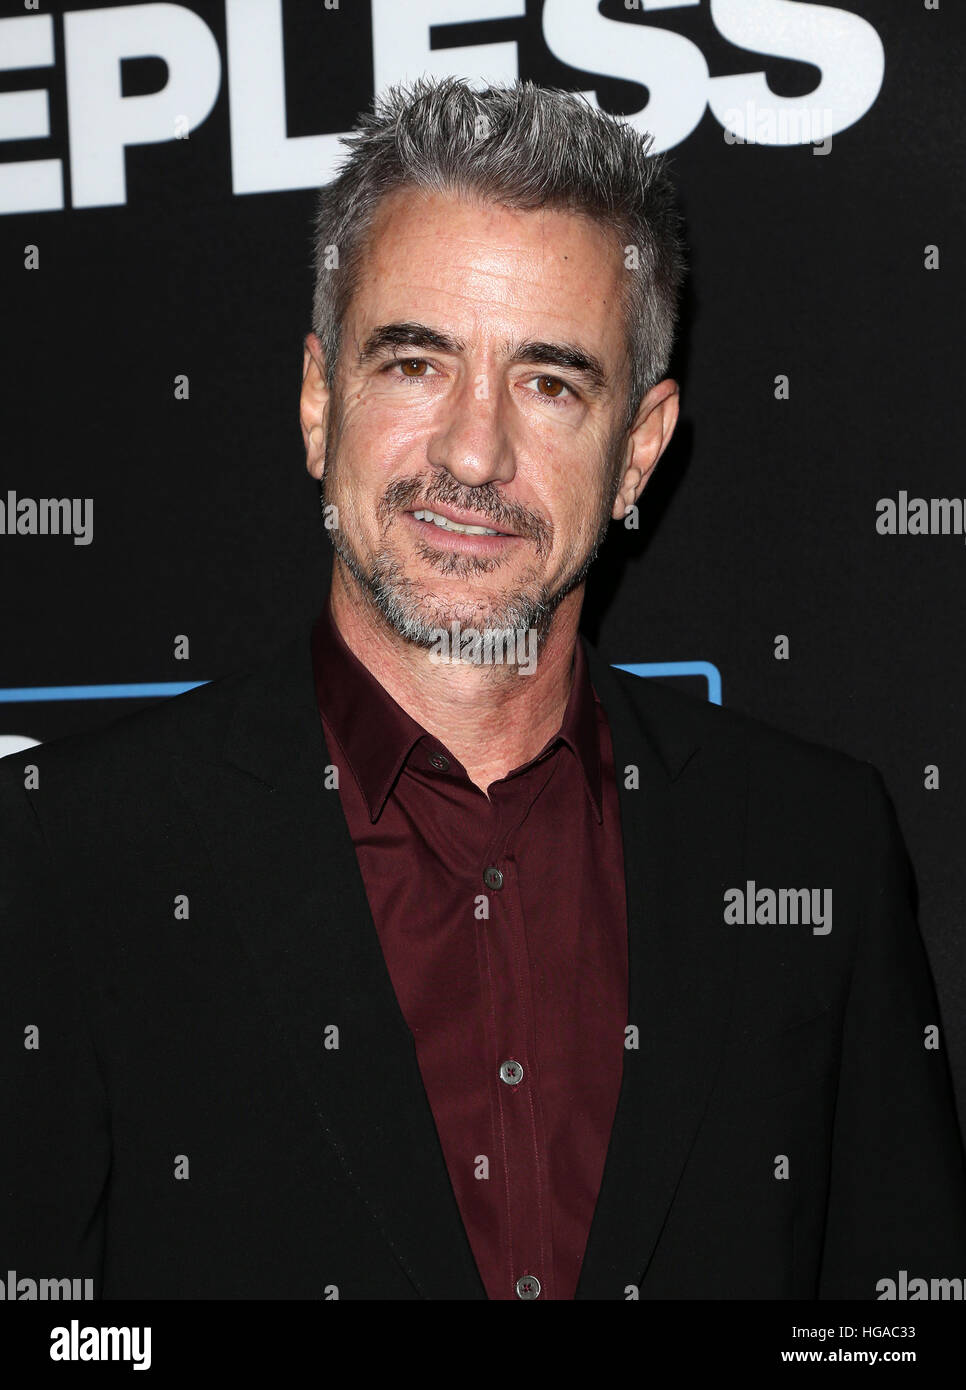 "Los Angeles, CA - JANUARY 05: Dermot Mulroney, At Premiere Of Open Road Films' ""Sleepless"", At Regal LA Live Stadium Stock Photo"